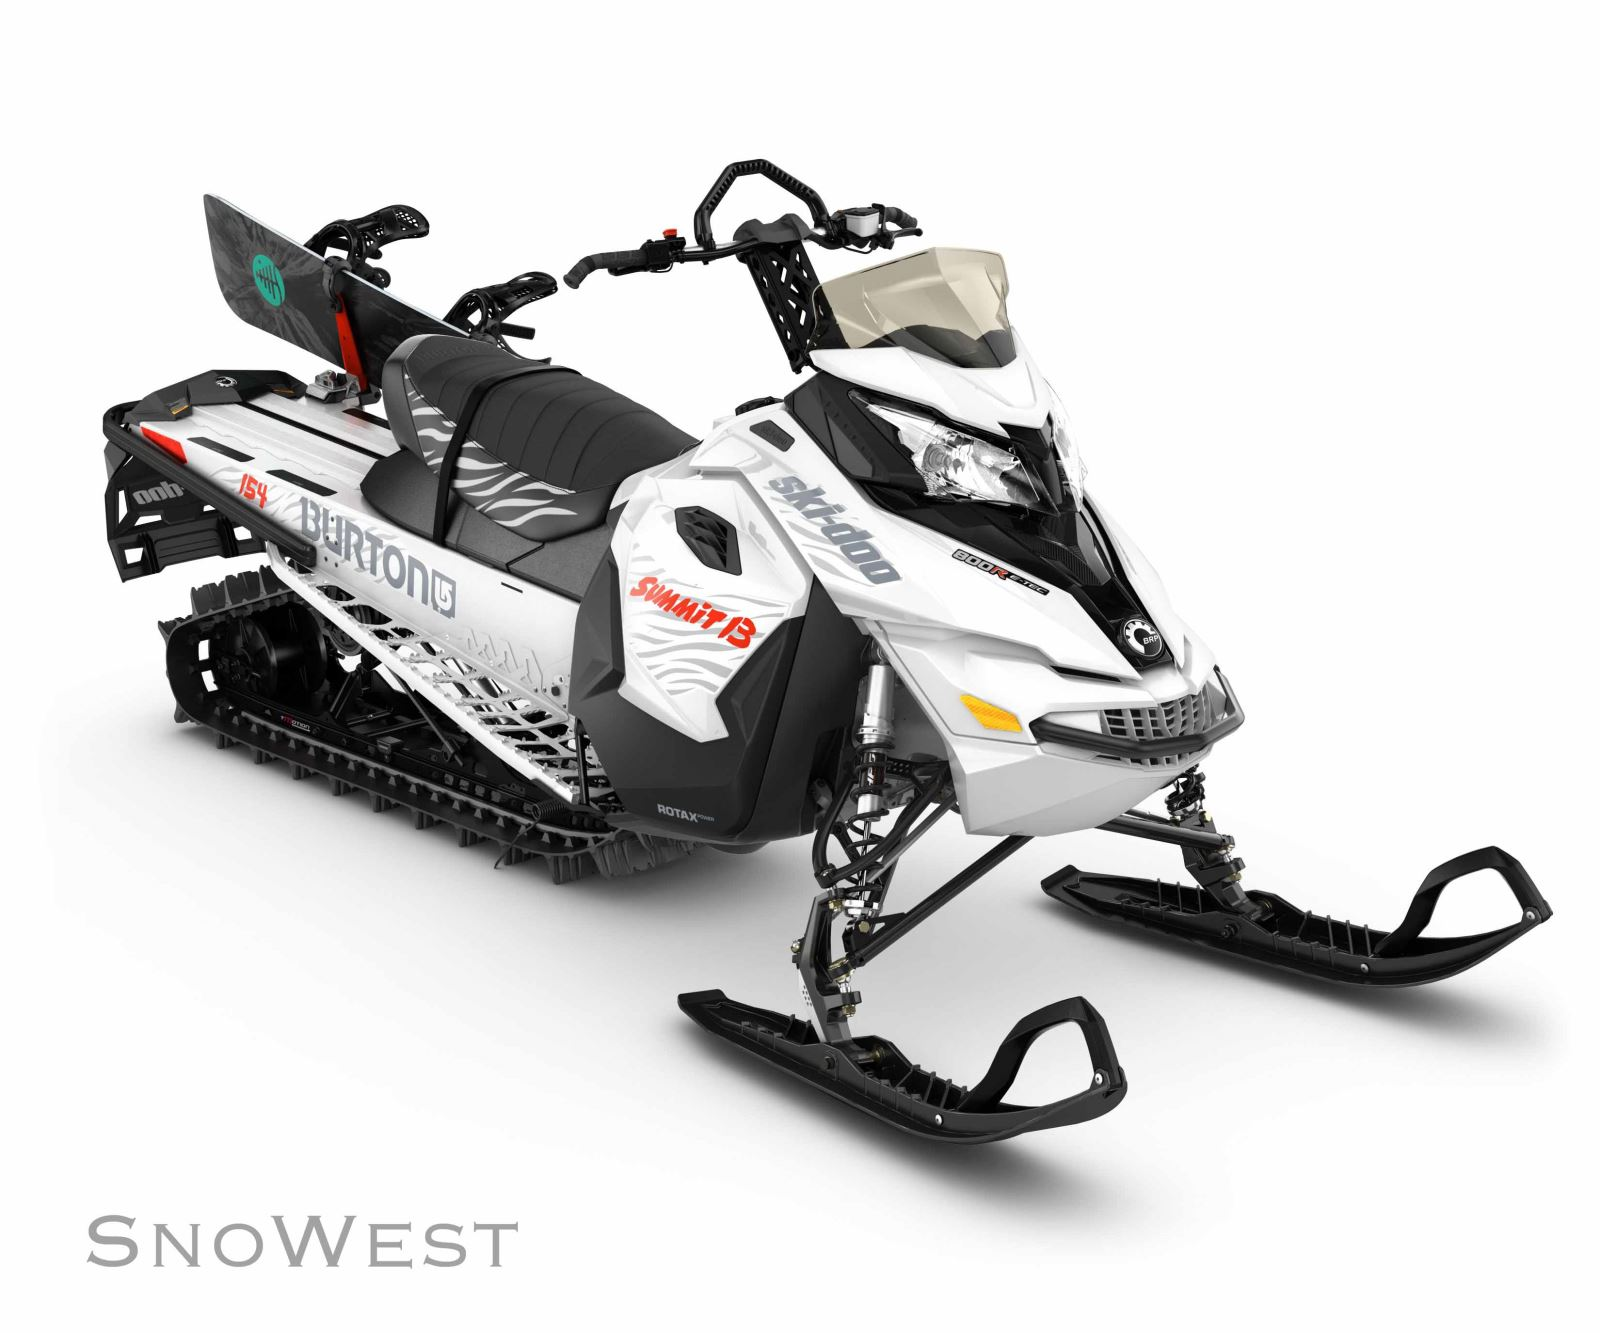 ski doo neu as - photo #19